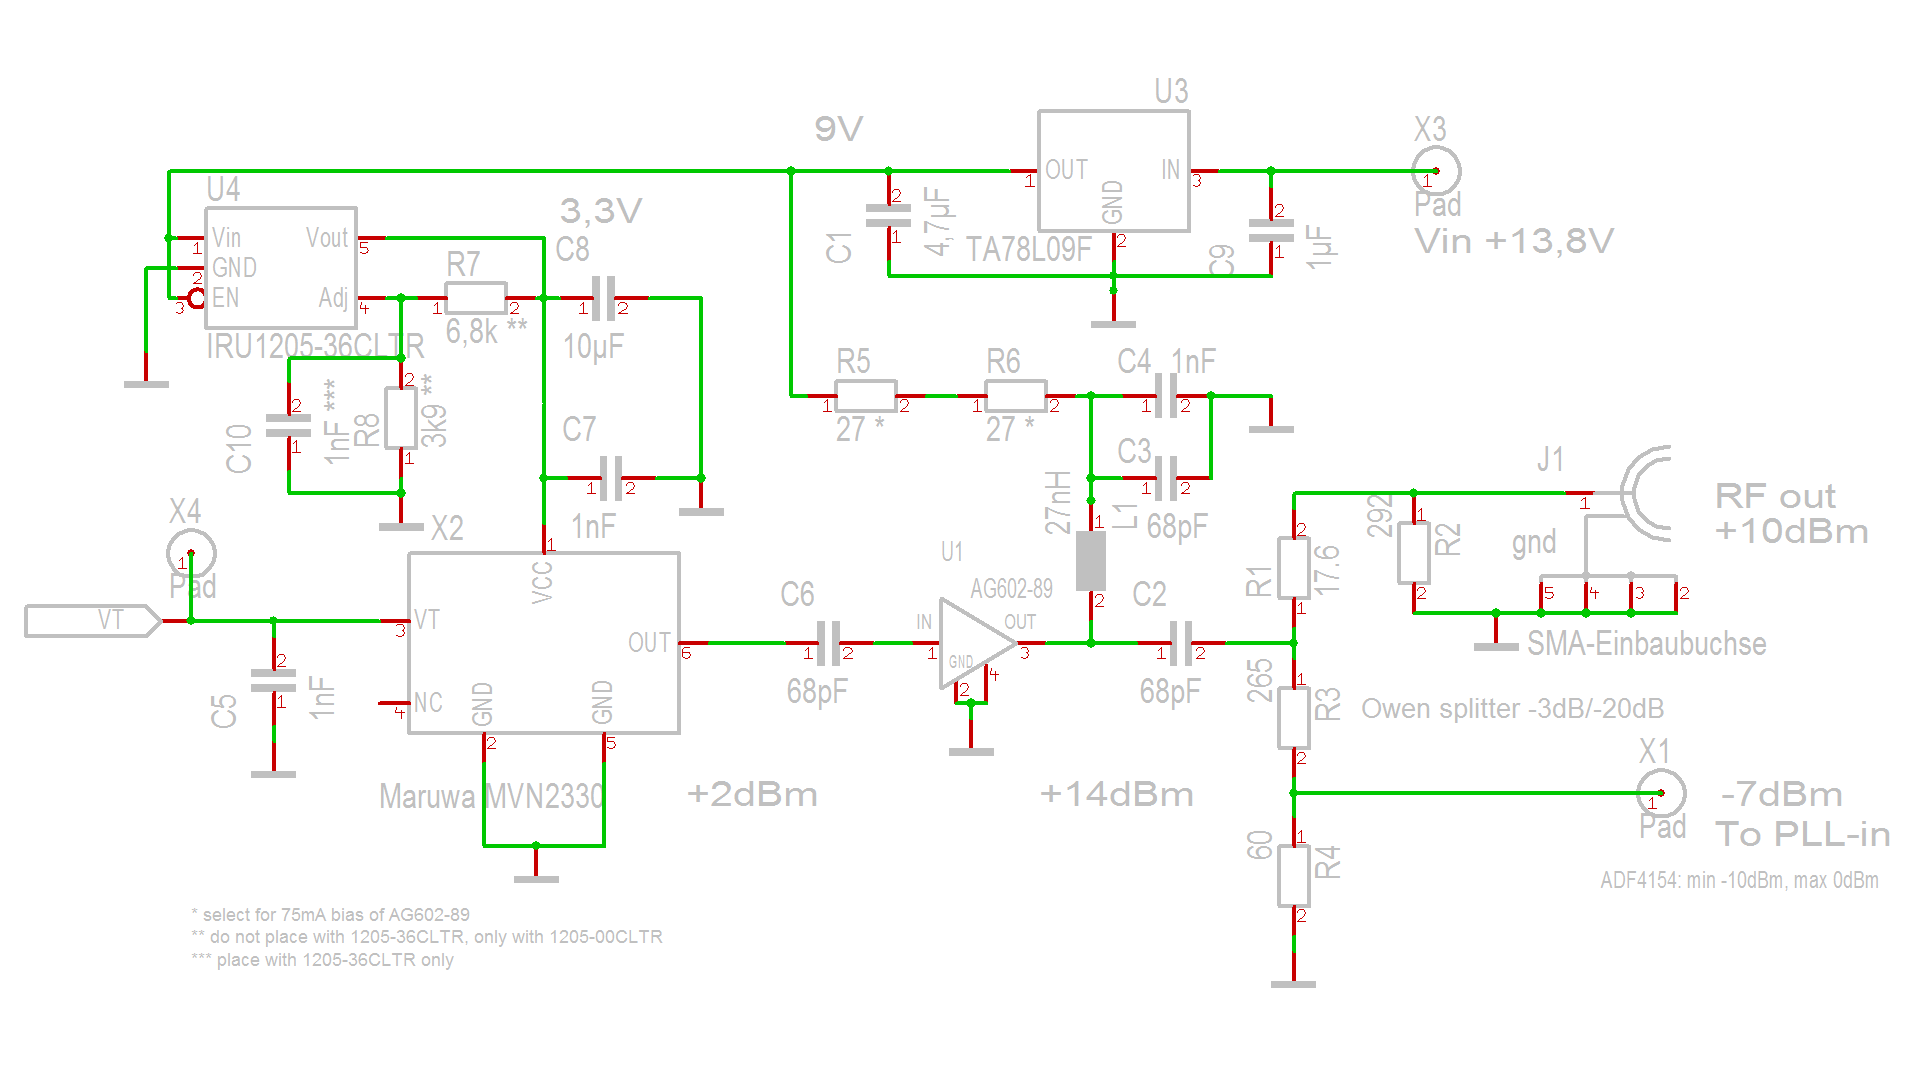 Lm1310 Fm Stereo Decoder together with Sxediaamhffm furthermore 555 Watchdog For Uc And Up Systems as well Electronique realisations gene hf 002 also Index. on pll circuits